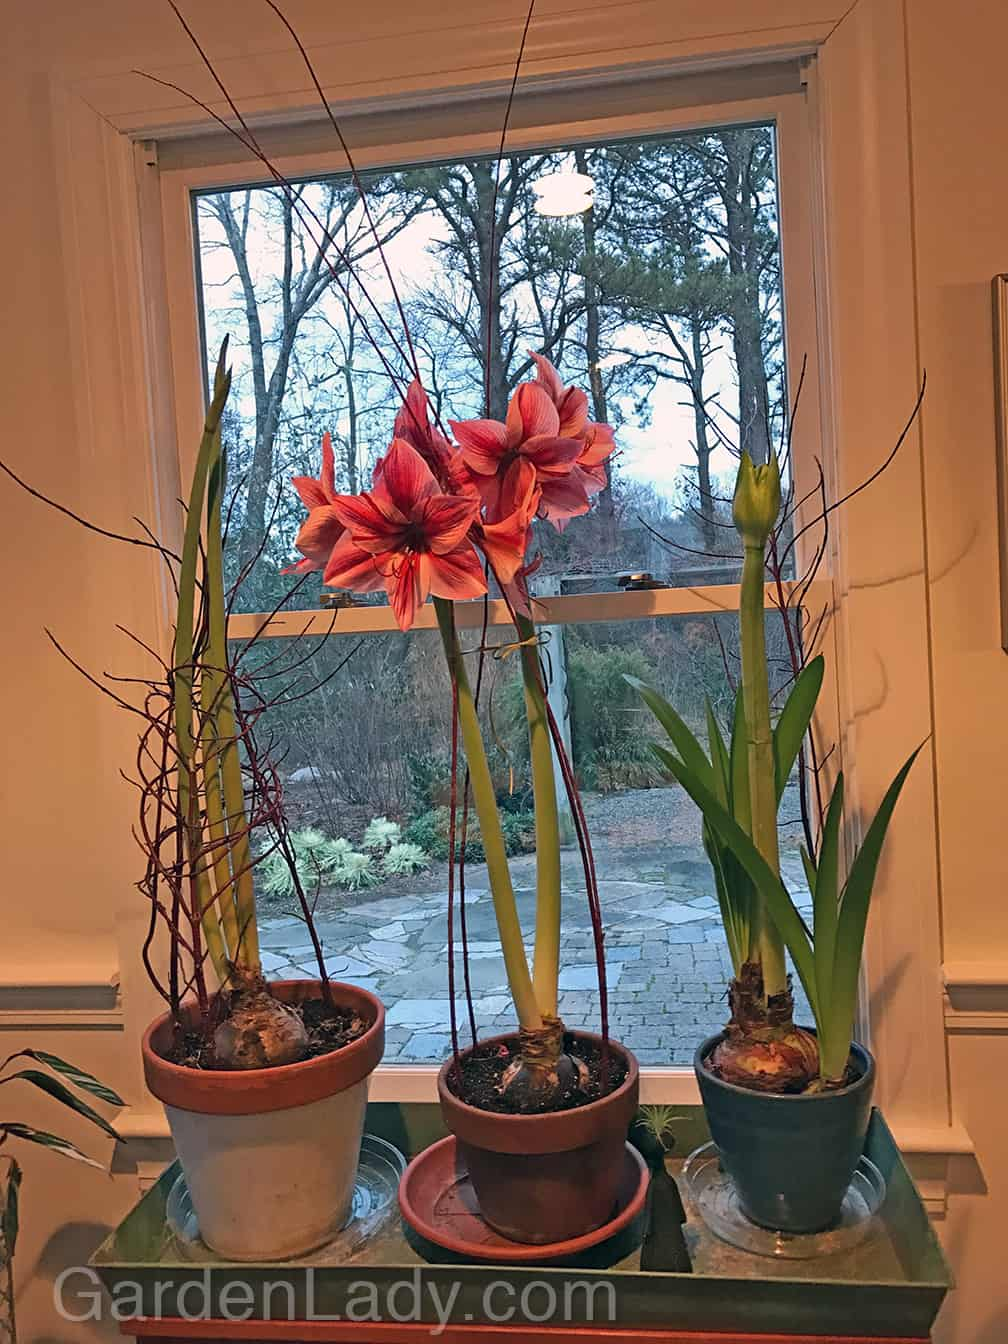 Twig Supports for Amaryllis Blooms